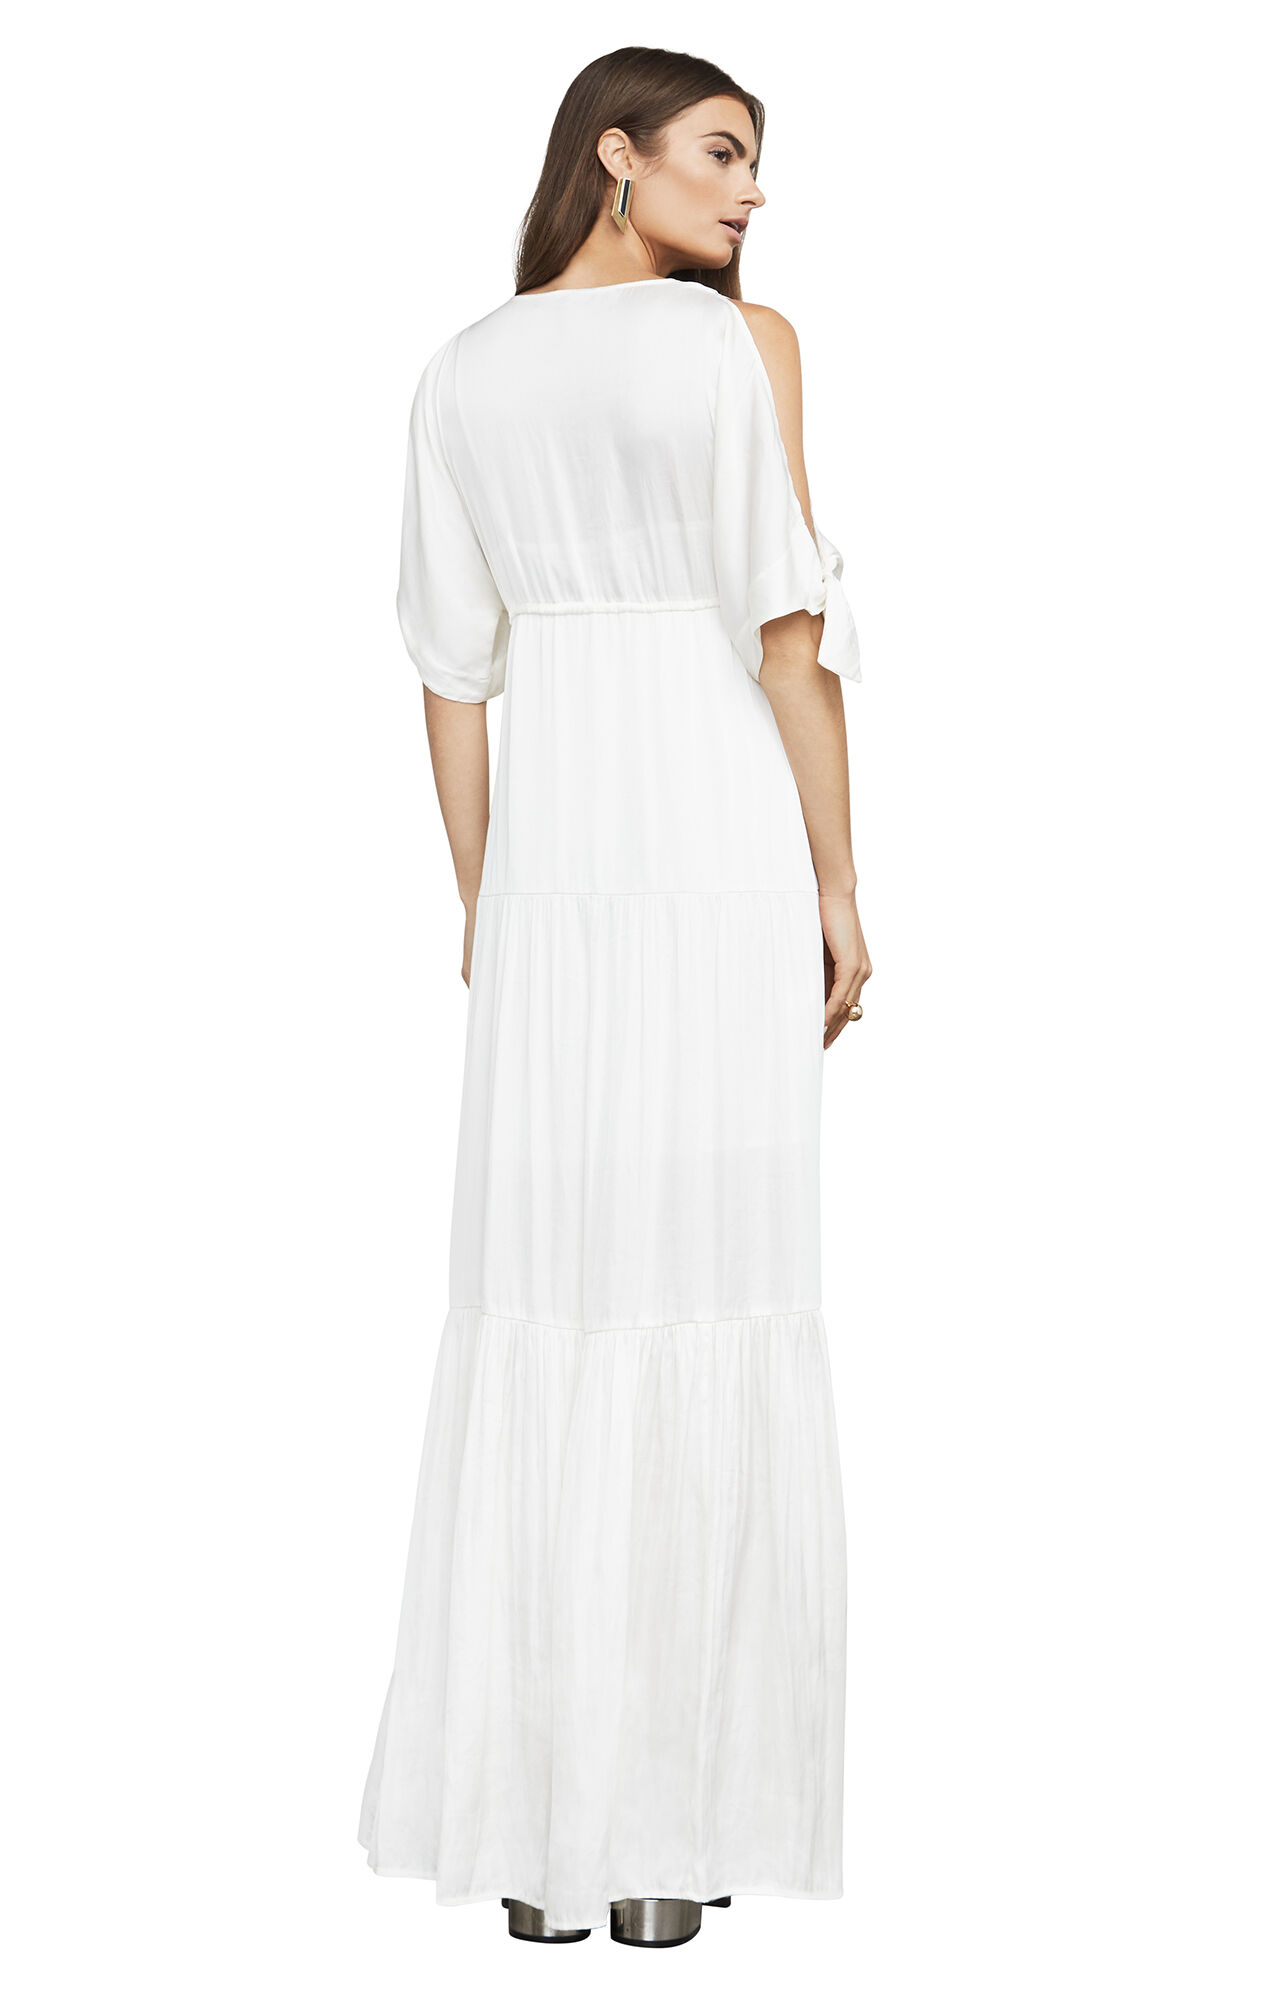 Alysa Cold-Shoulder Maxi Dress